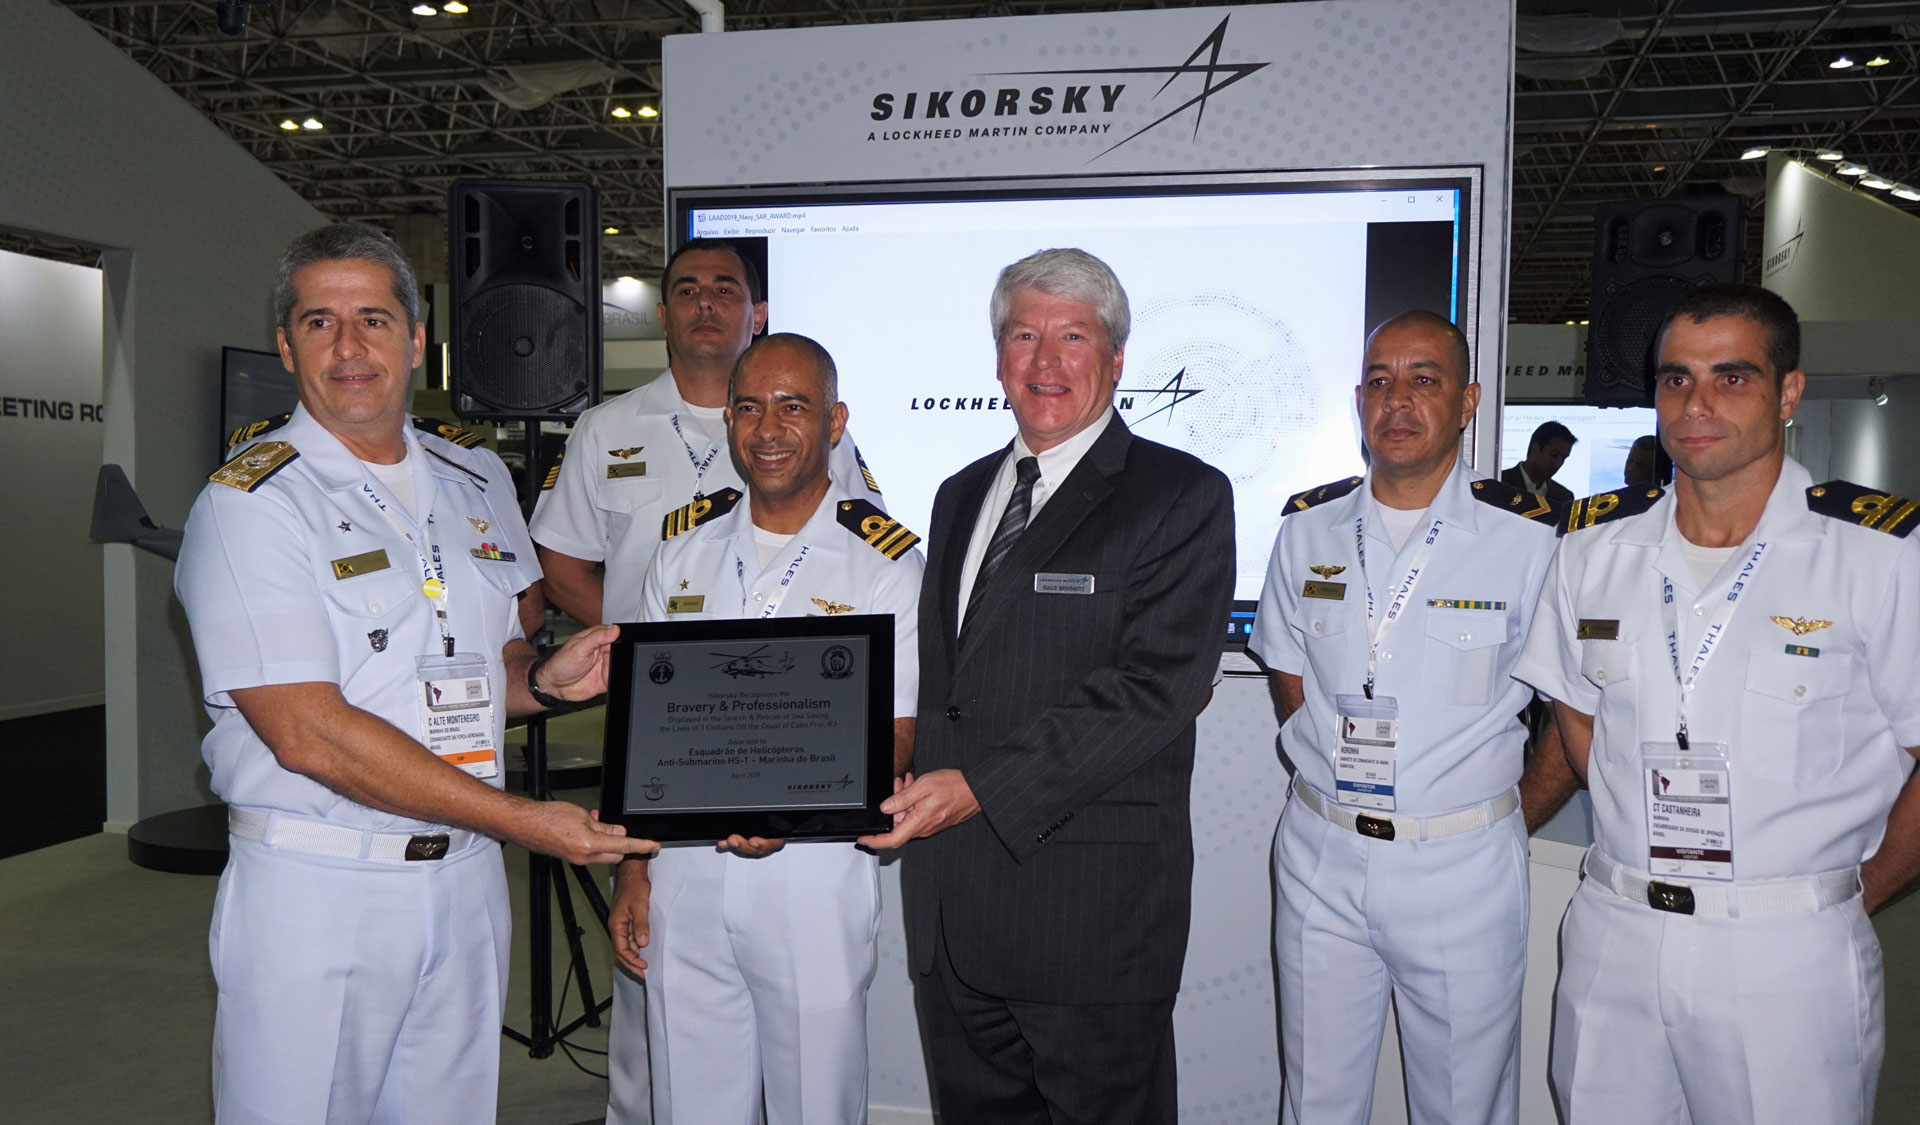 Lockheed Martin's Dale Bennett presents a rescue award plaque to the Brazilian Navy HS-1 squadron during a series of recognition events at LAAD.